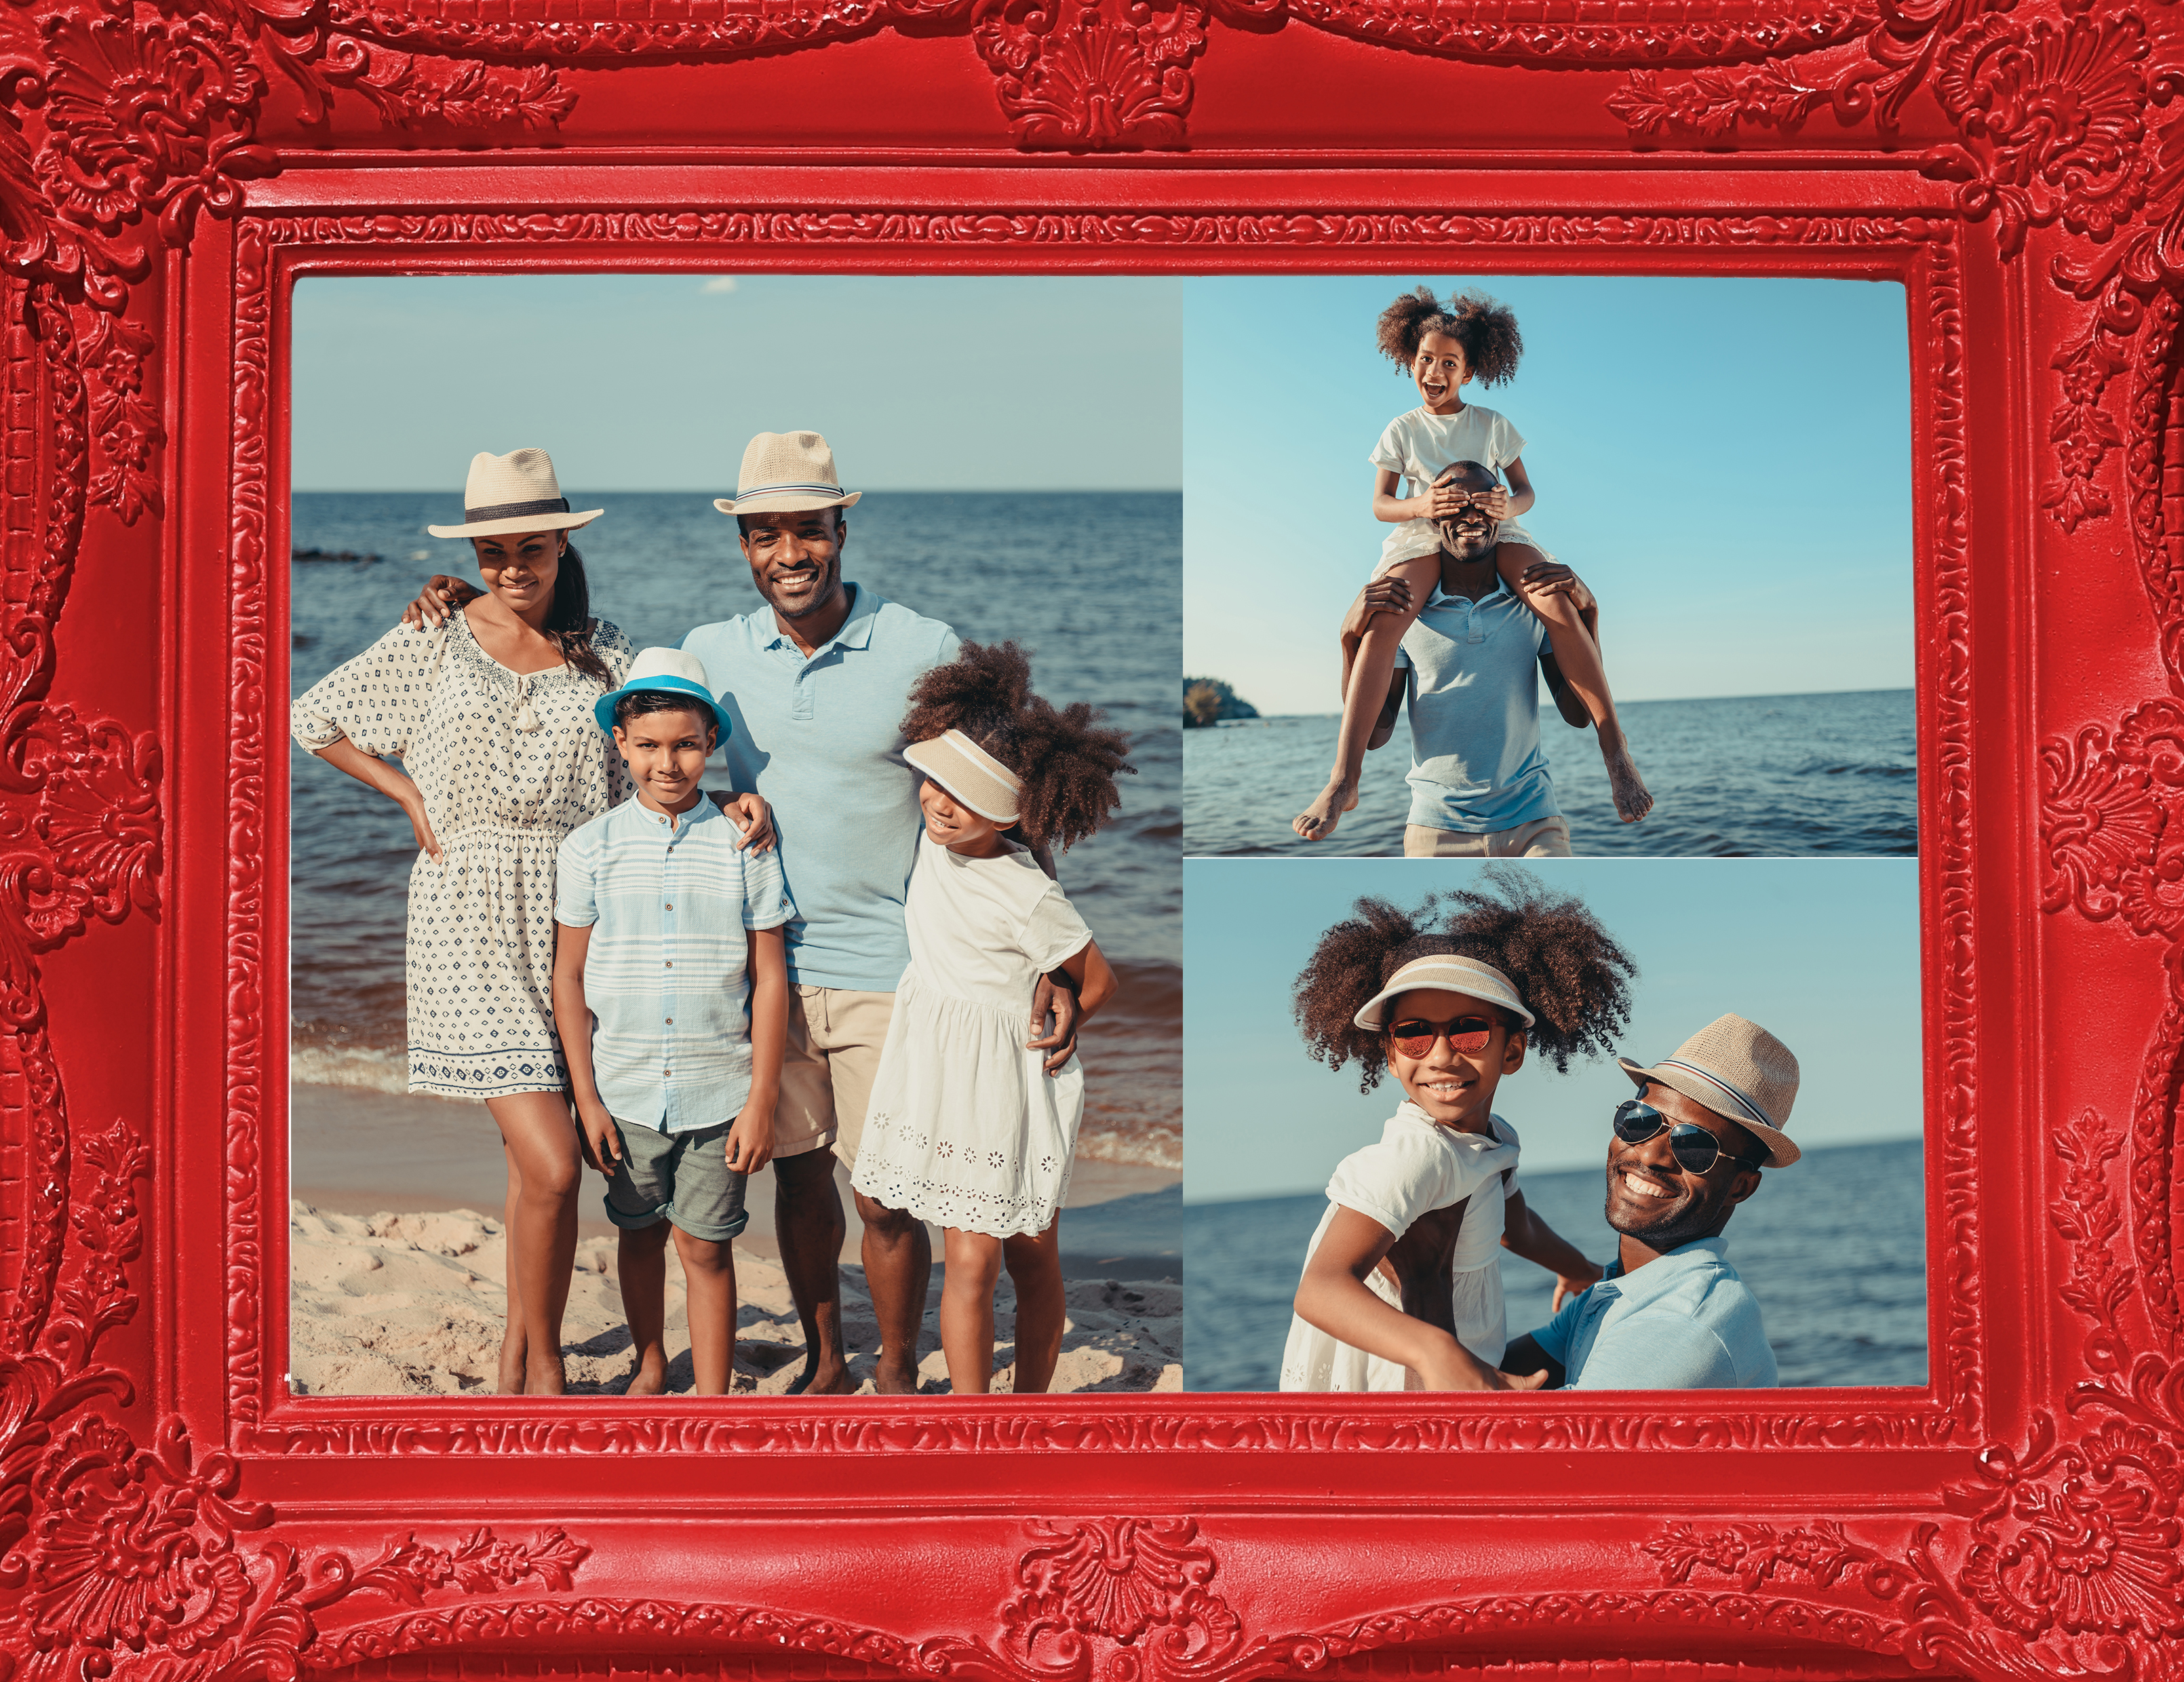 Red Frame Collage With Family